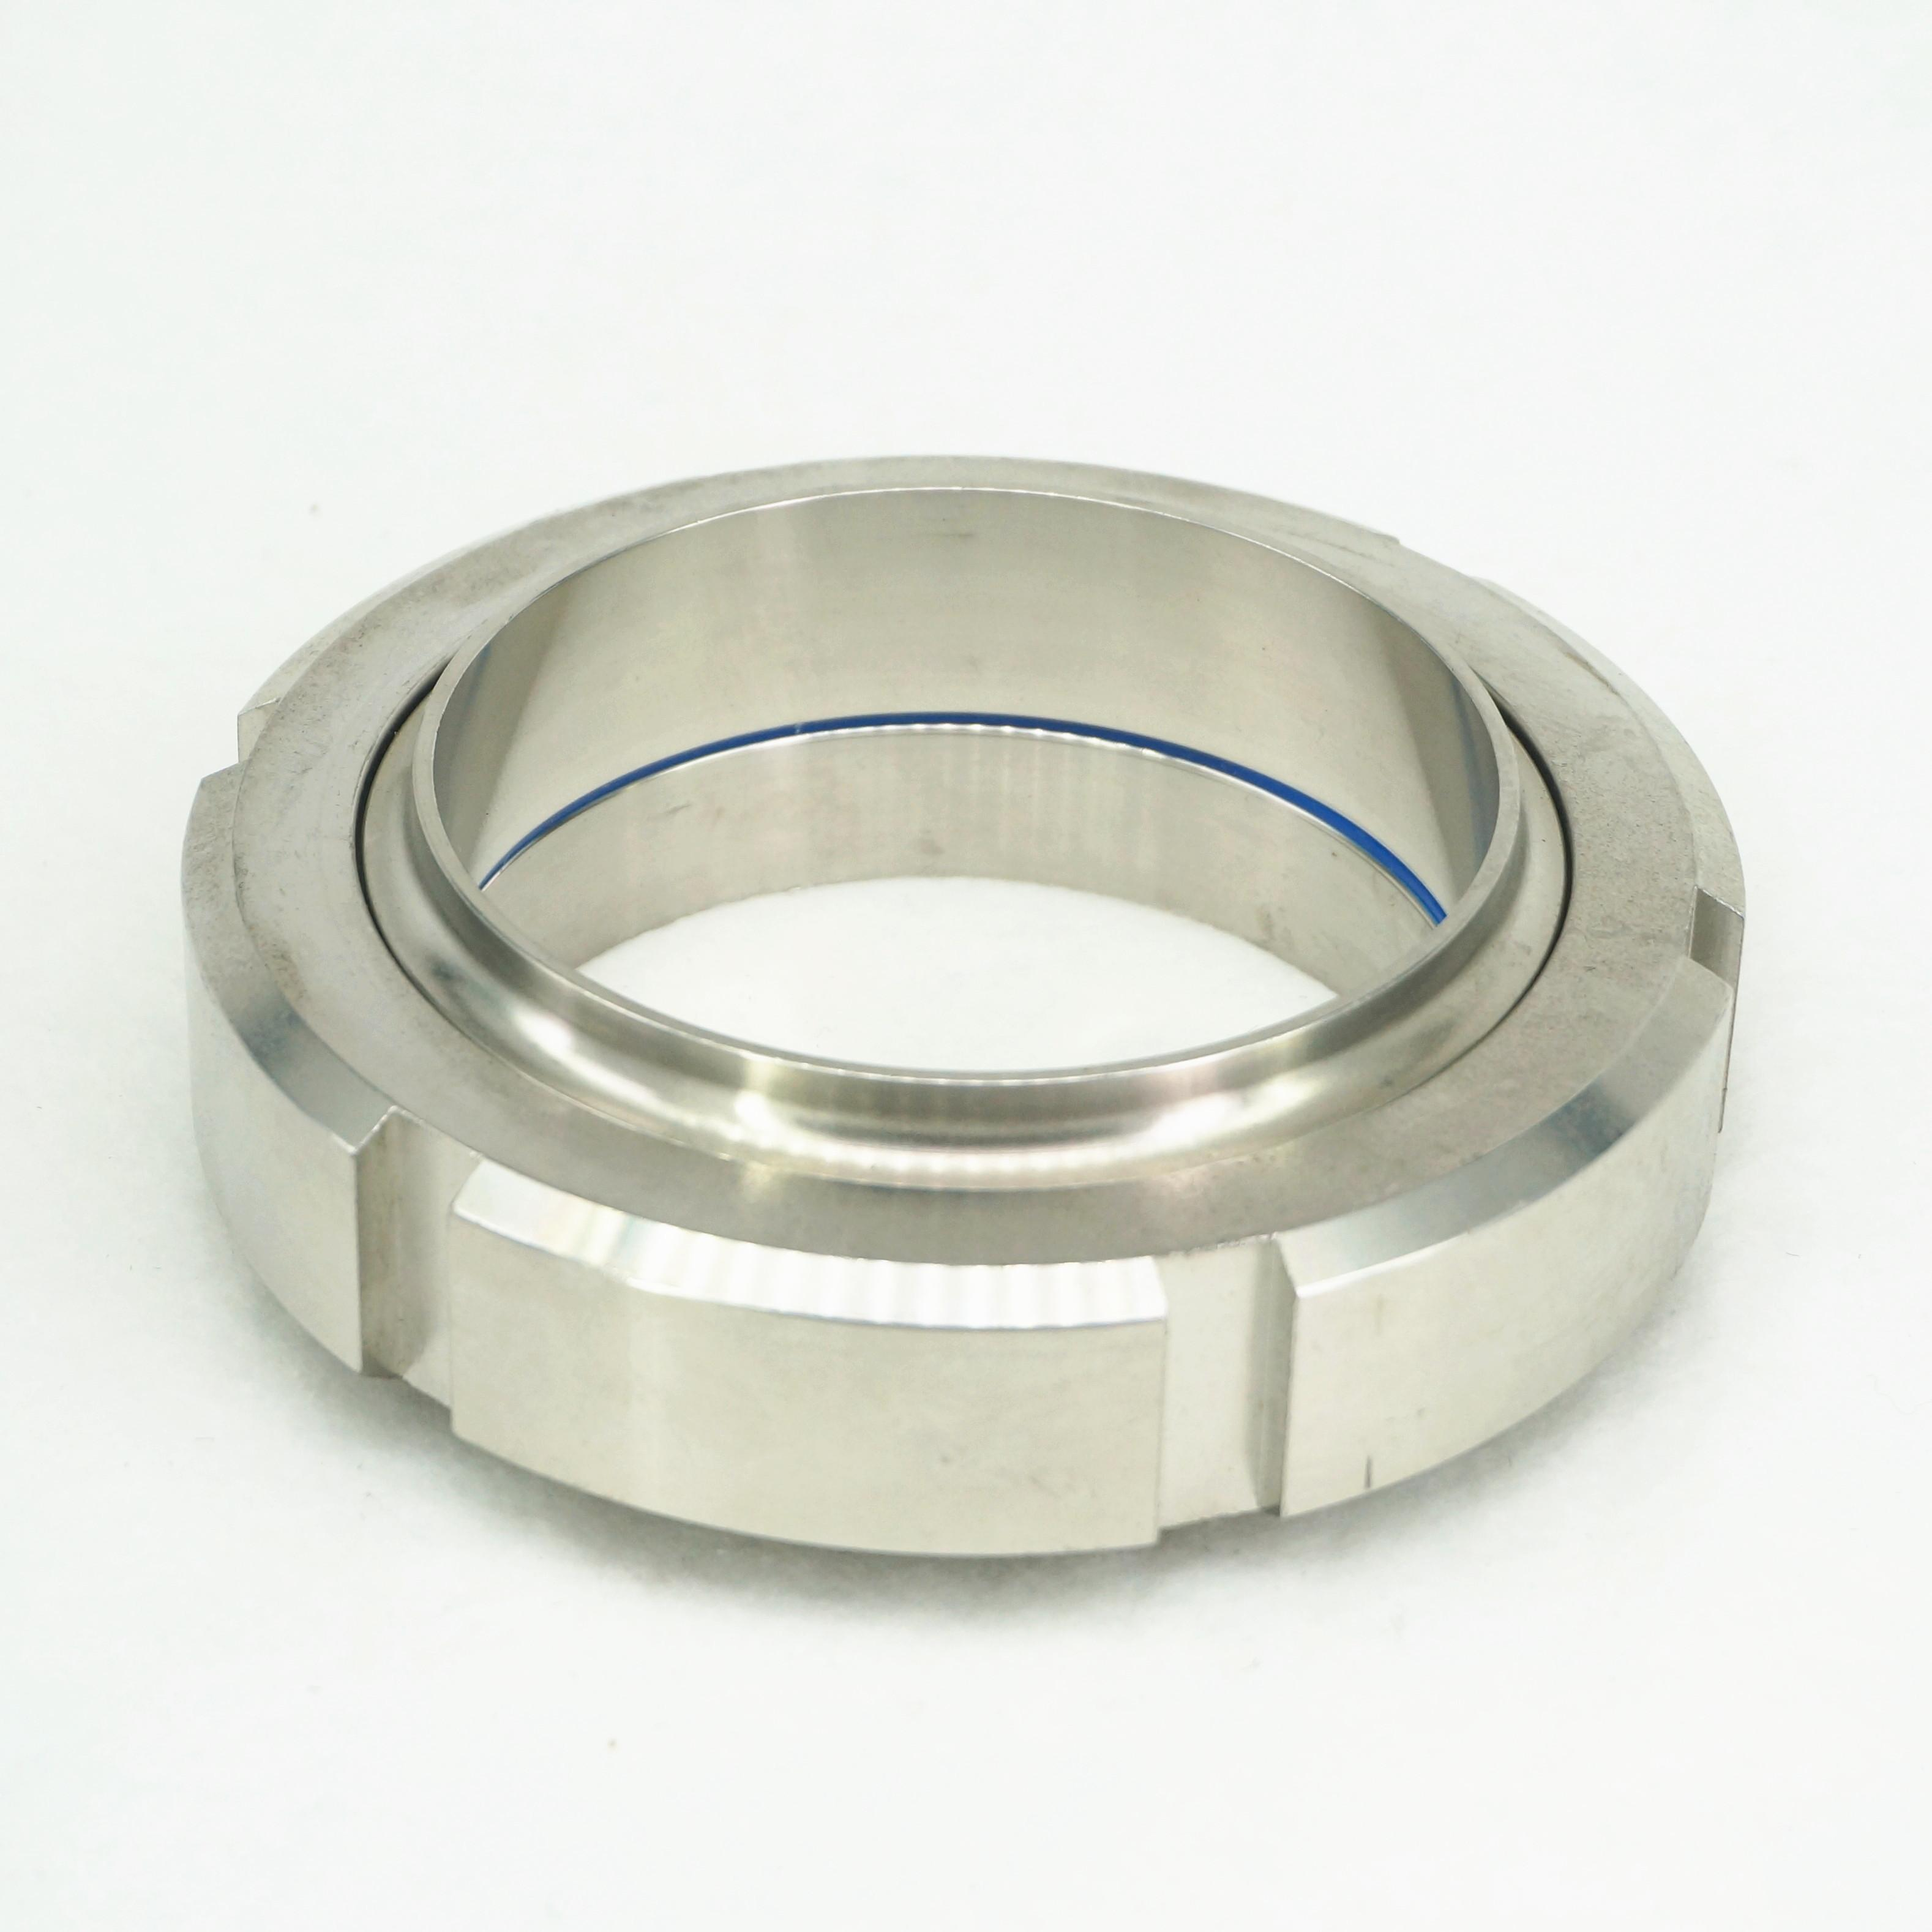 DN100 304 Stainless Steel Sanitary DIN Weld On Socket Union Set Pipe fitting new 48mm tee 3 way stainless steel 304 butt weld pipe fitting ss304